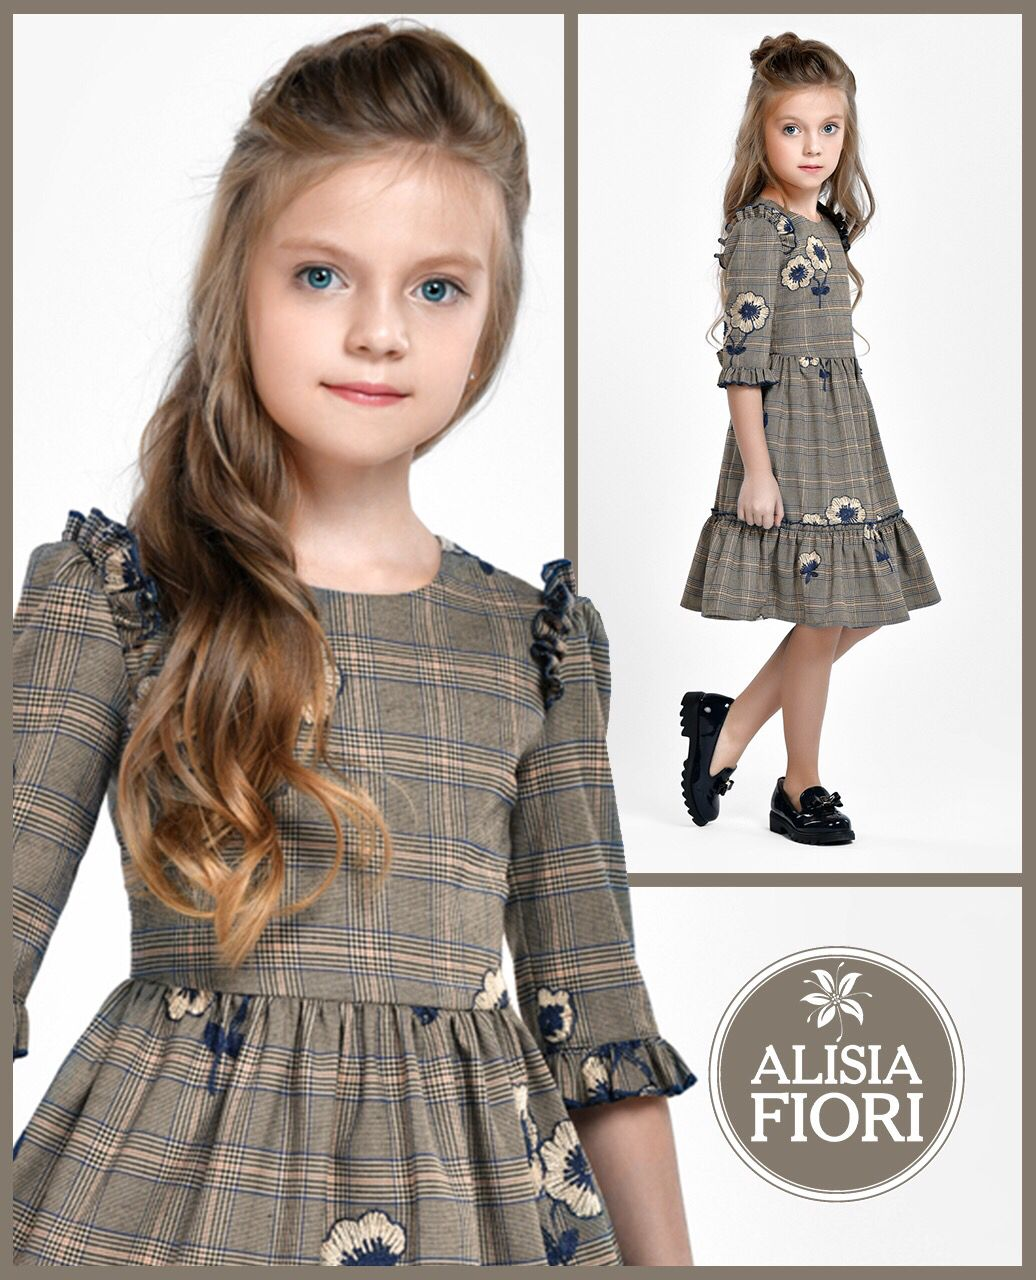 new product 0f77f 4a216 Dresses and coats for girls and women. Abiti e cappotti per ...